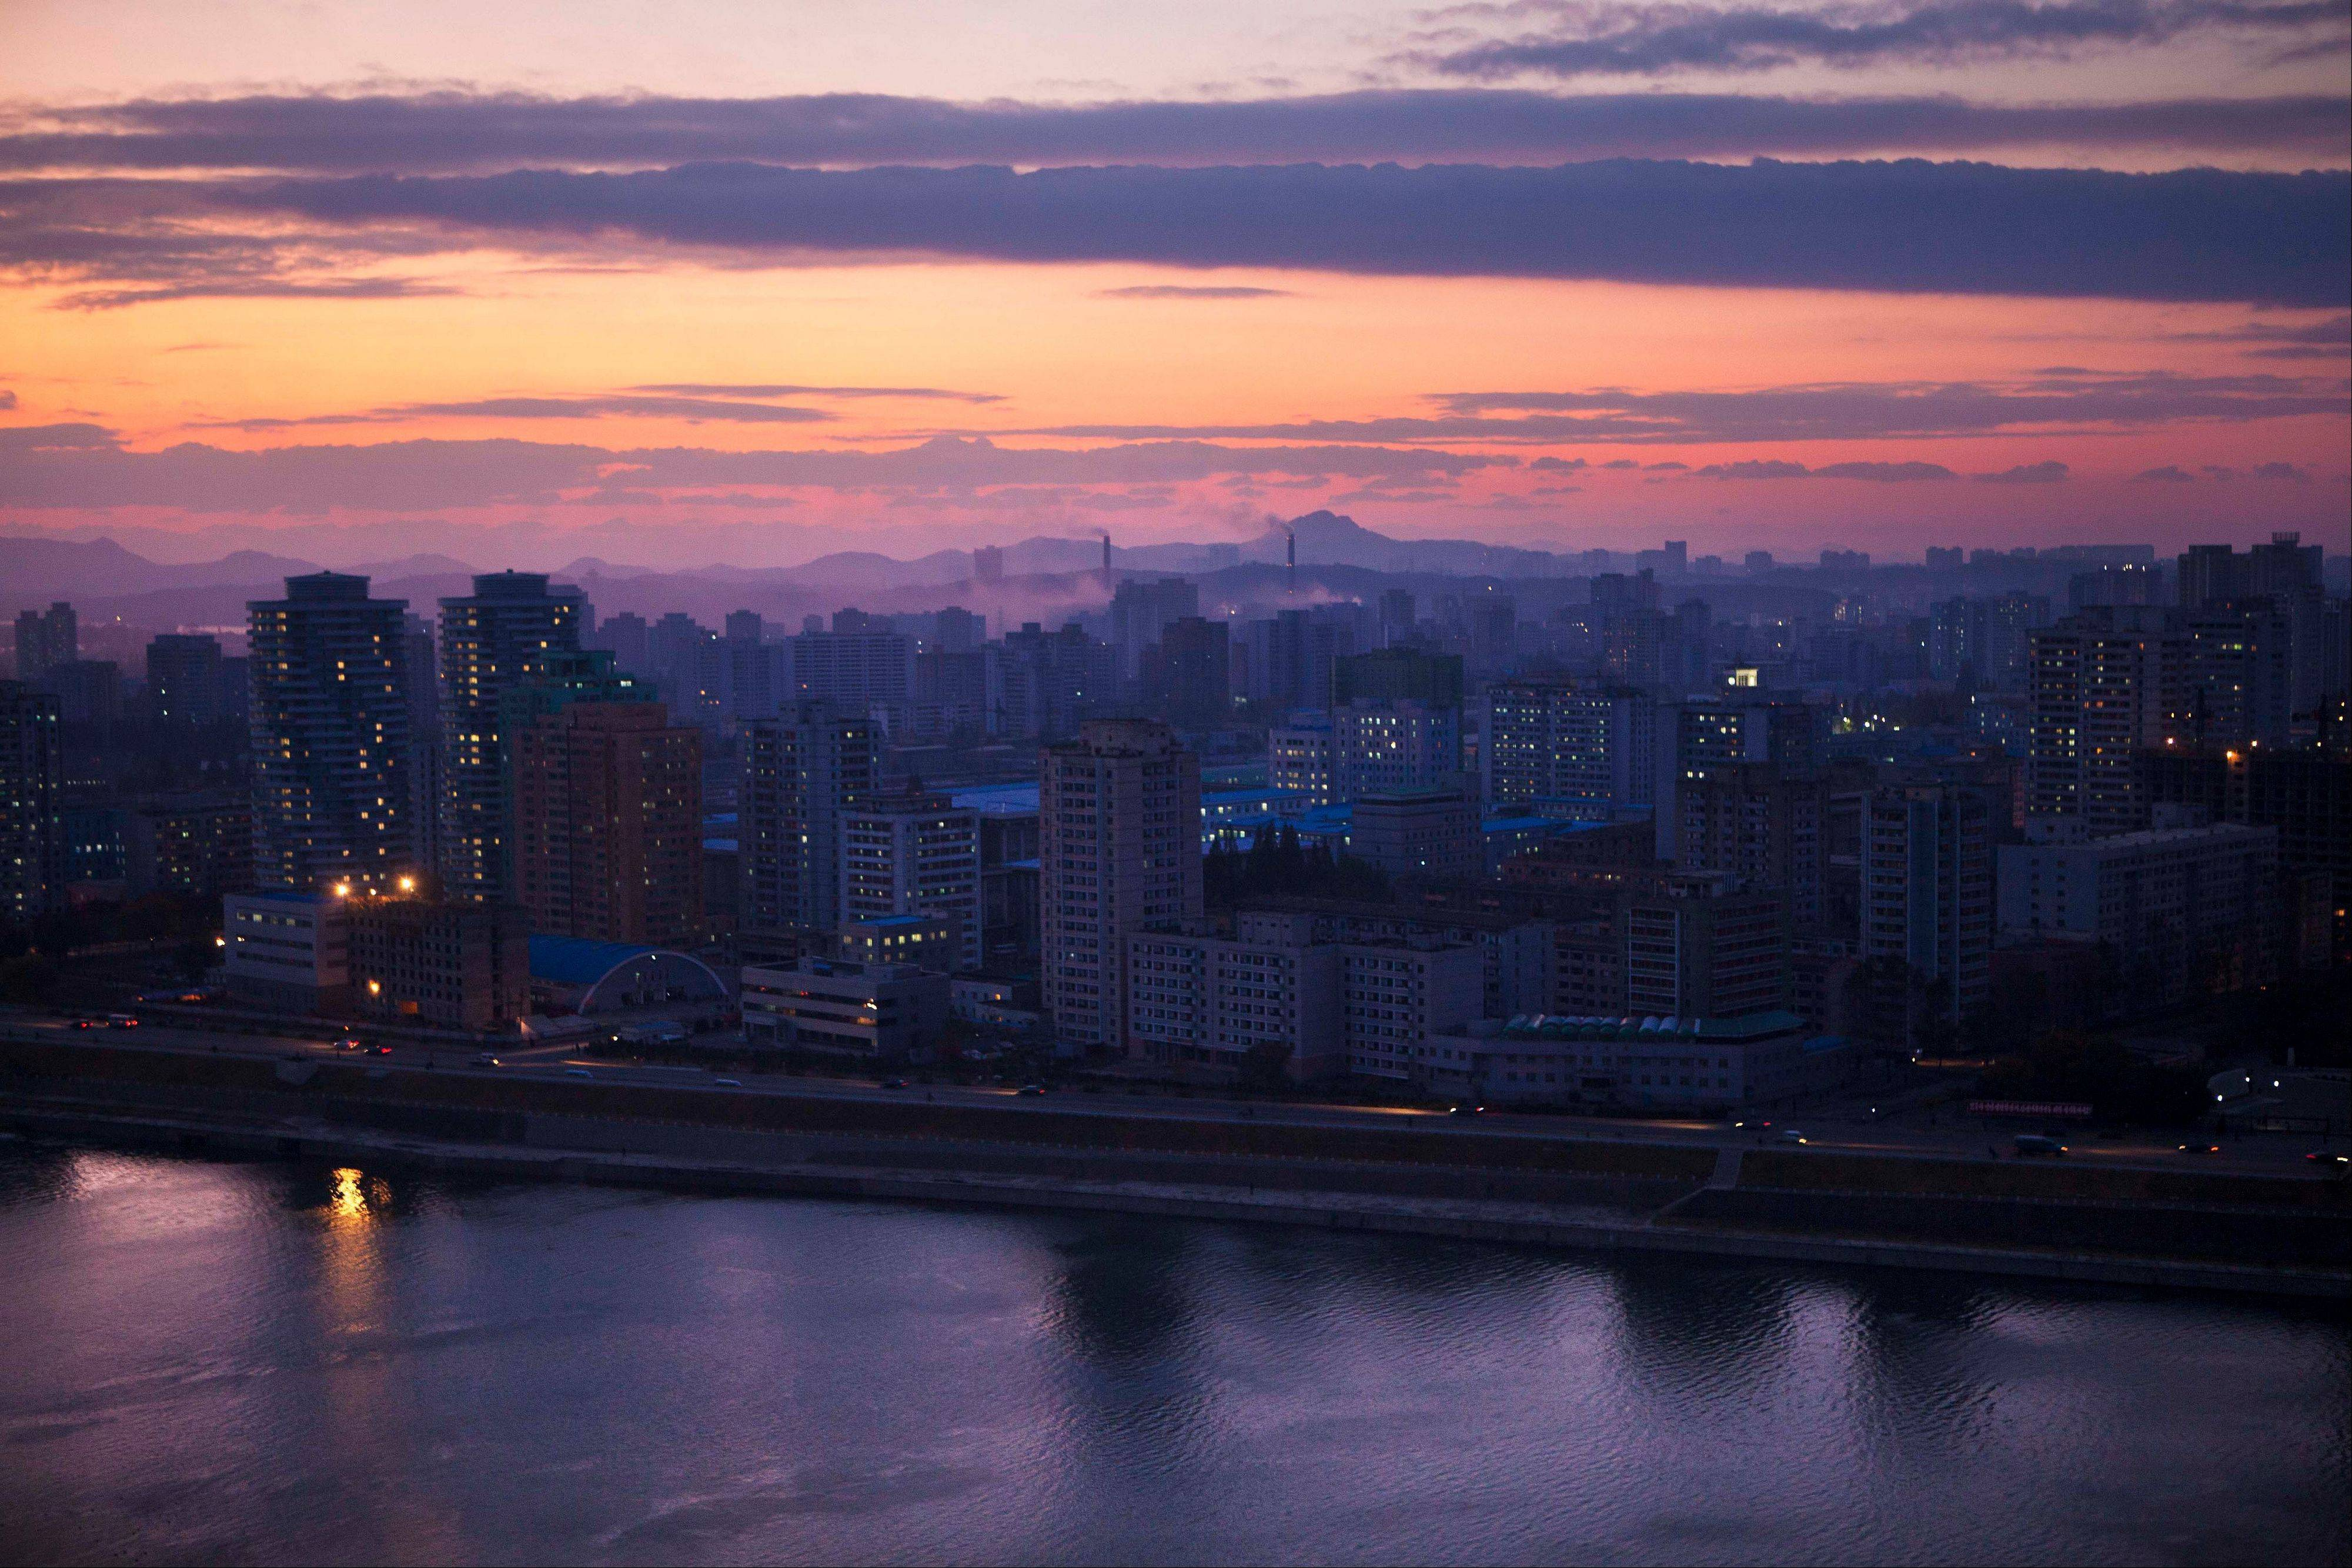 In October 2011, North Korea's capital city, Pyongyang, is lit up at dusk. Throughout the capital, and in cities and towns across the country, construction workers are trying to finish building renovations and major projects as the country prepares for celebrations on April 15 to mark the 100th anniversary of the birth of North Korea founder Kim Il Sung.